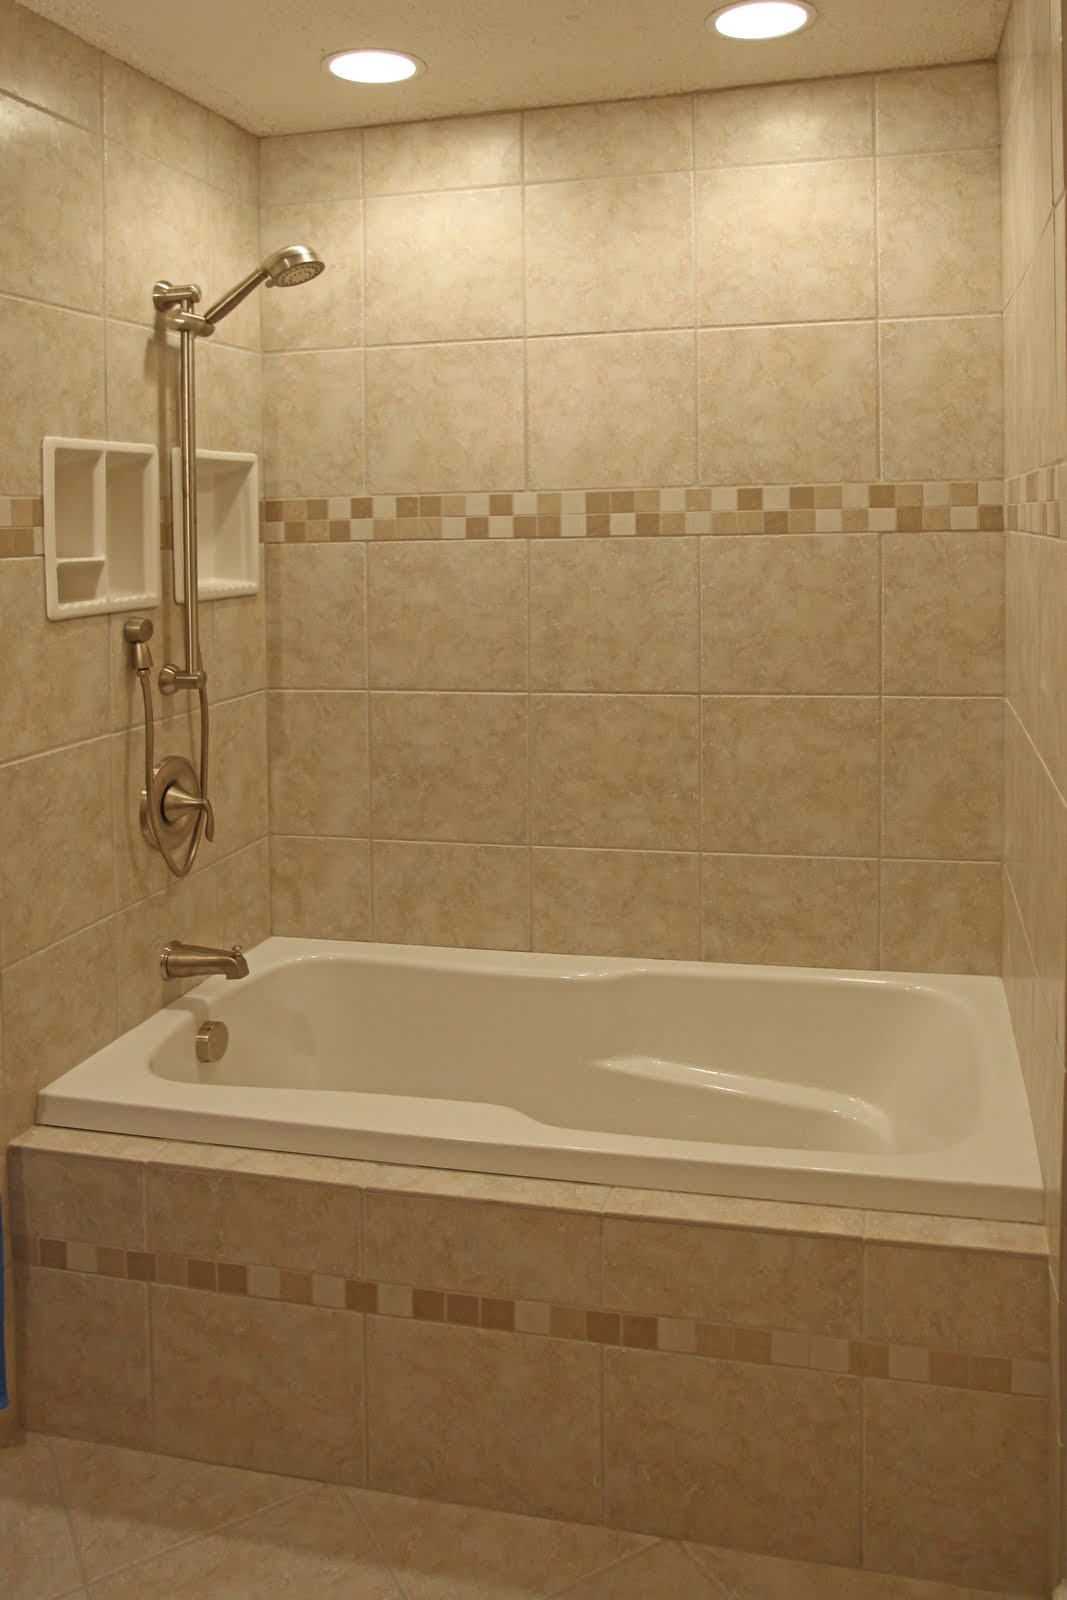 bathroom-tile-decorations-fijl